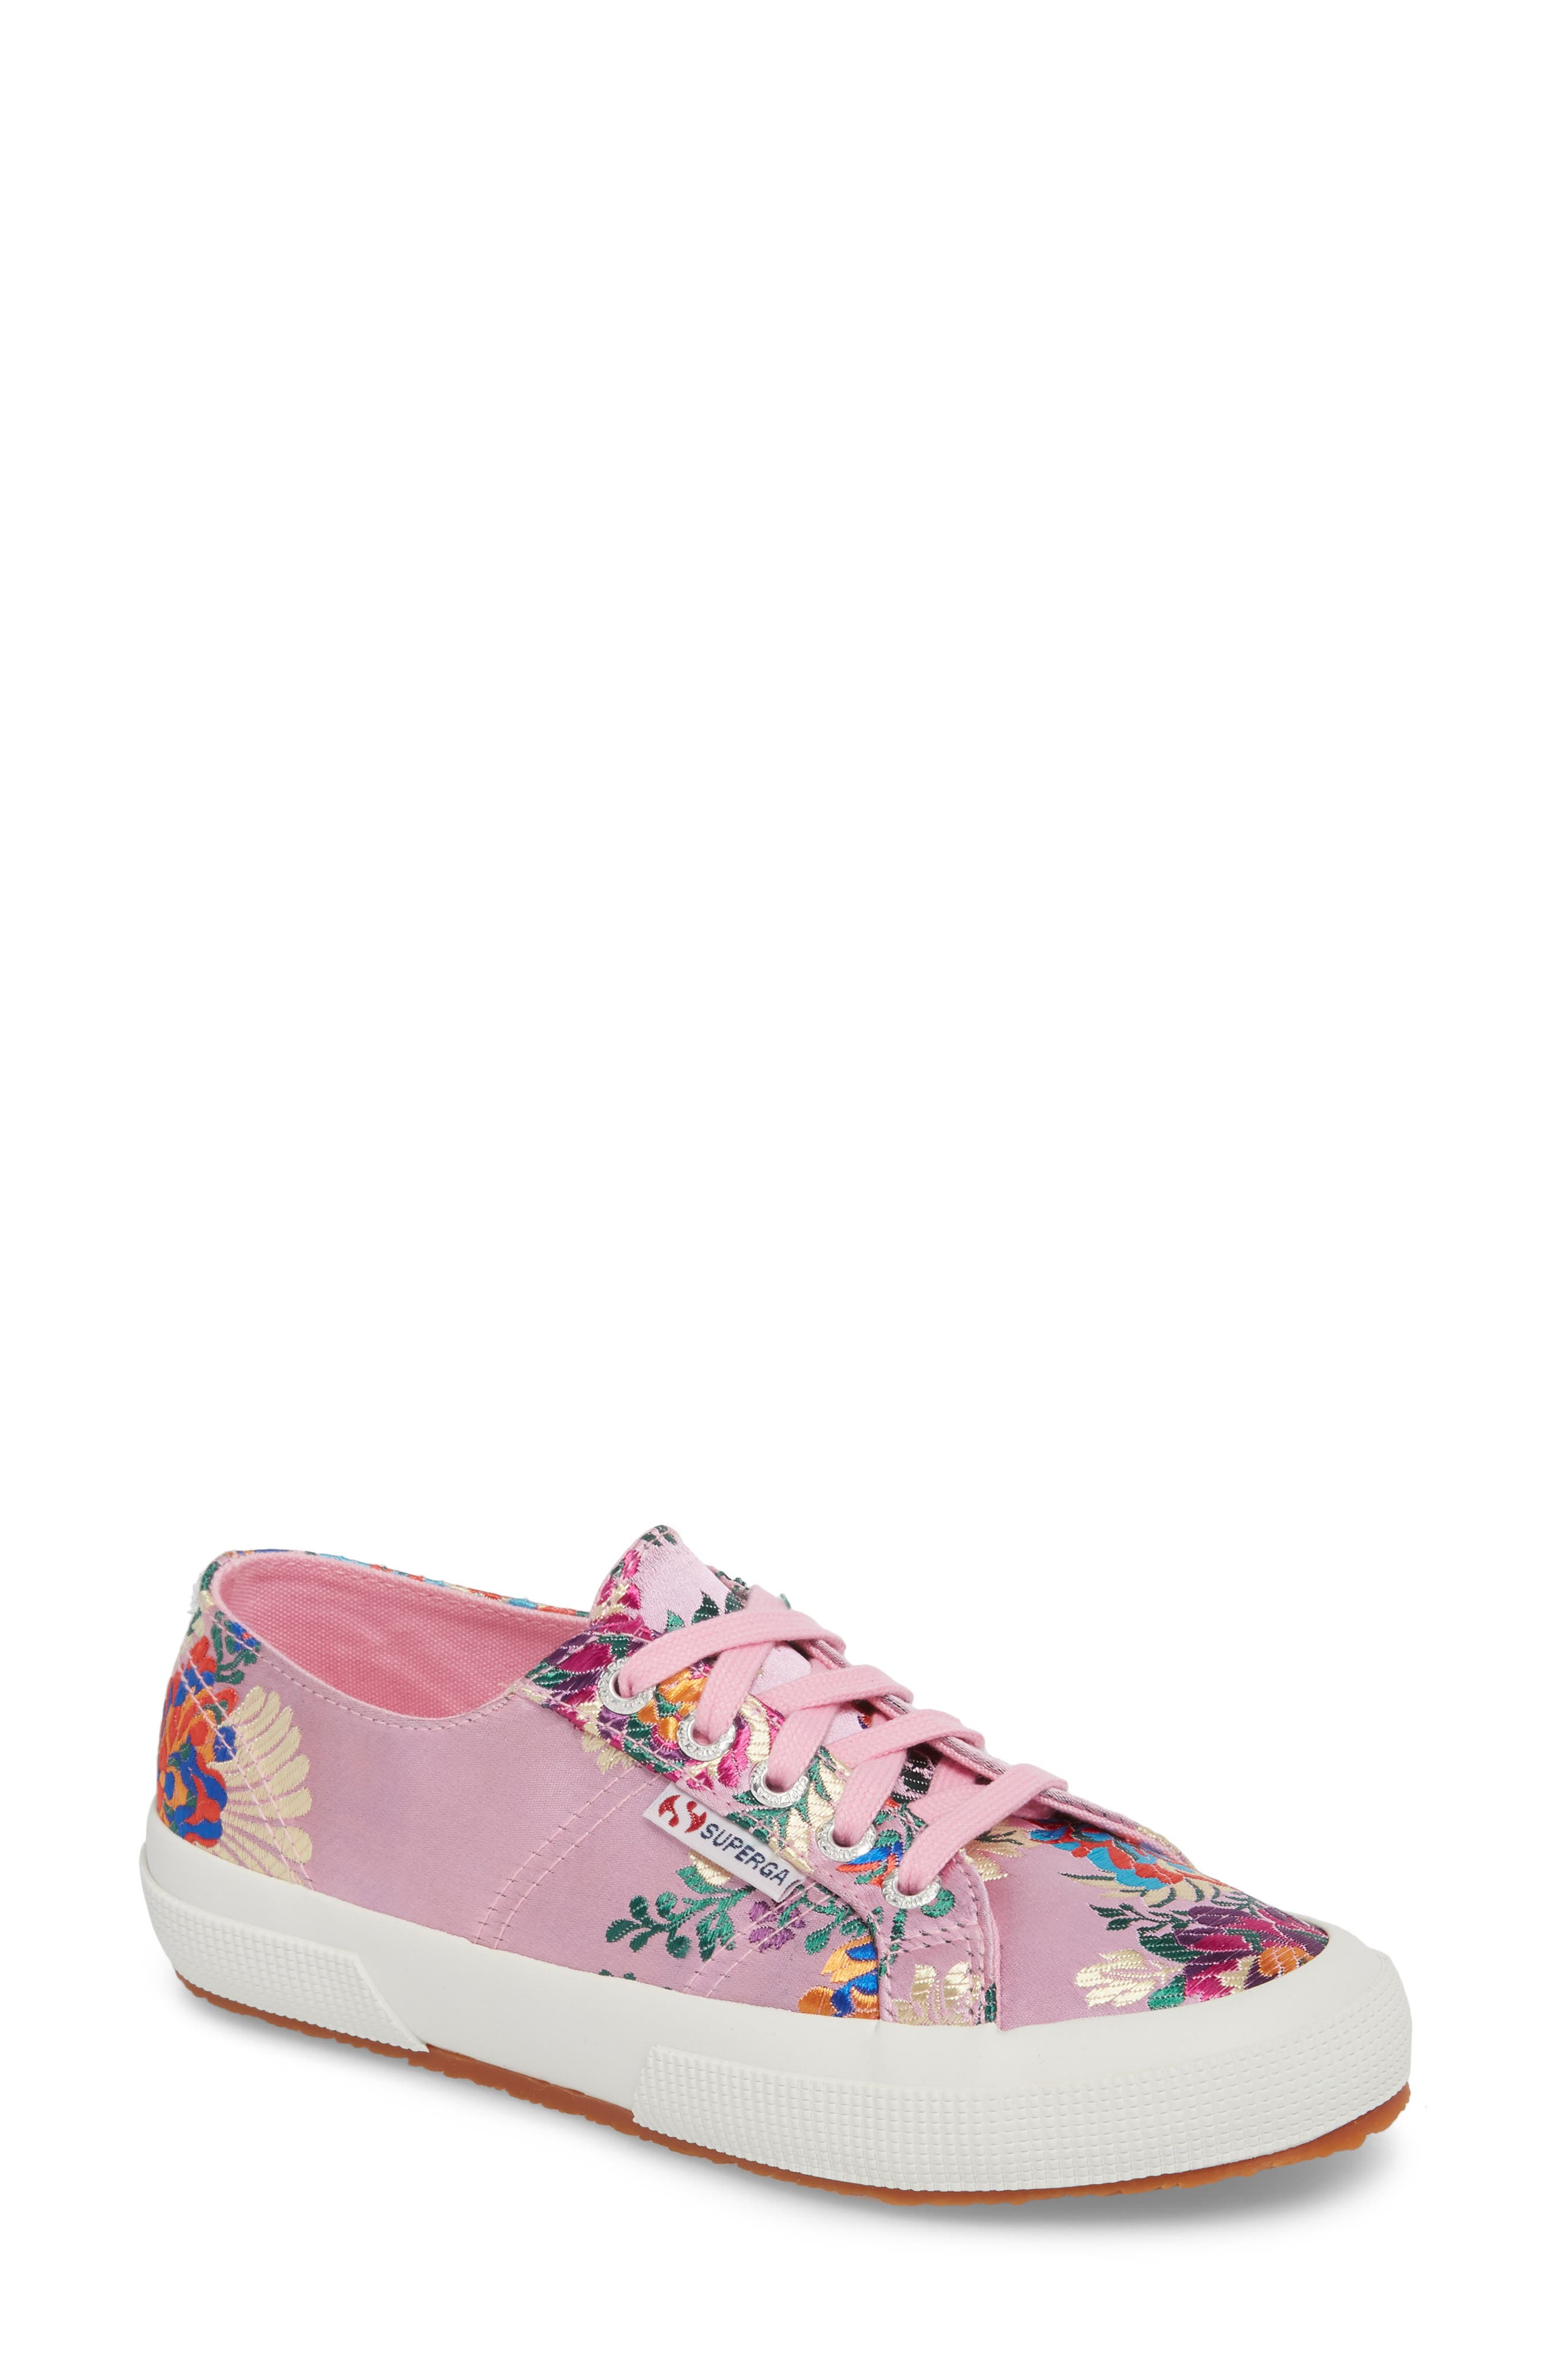 2750 Embroidered Sneaker,                         Main,                         color, Pink